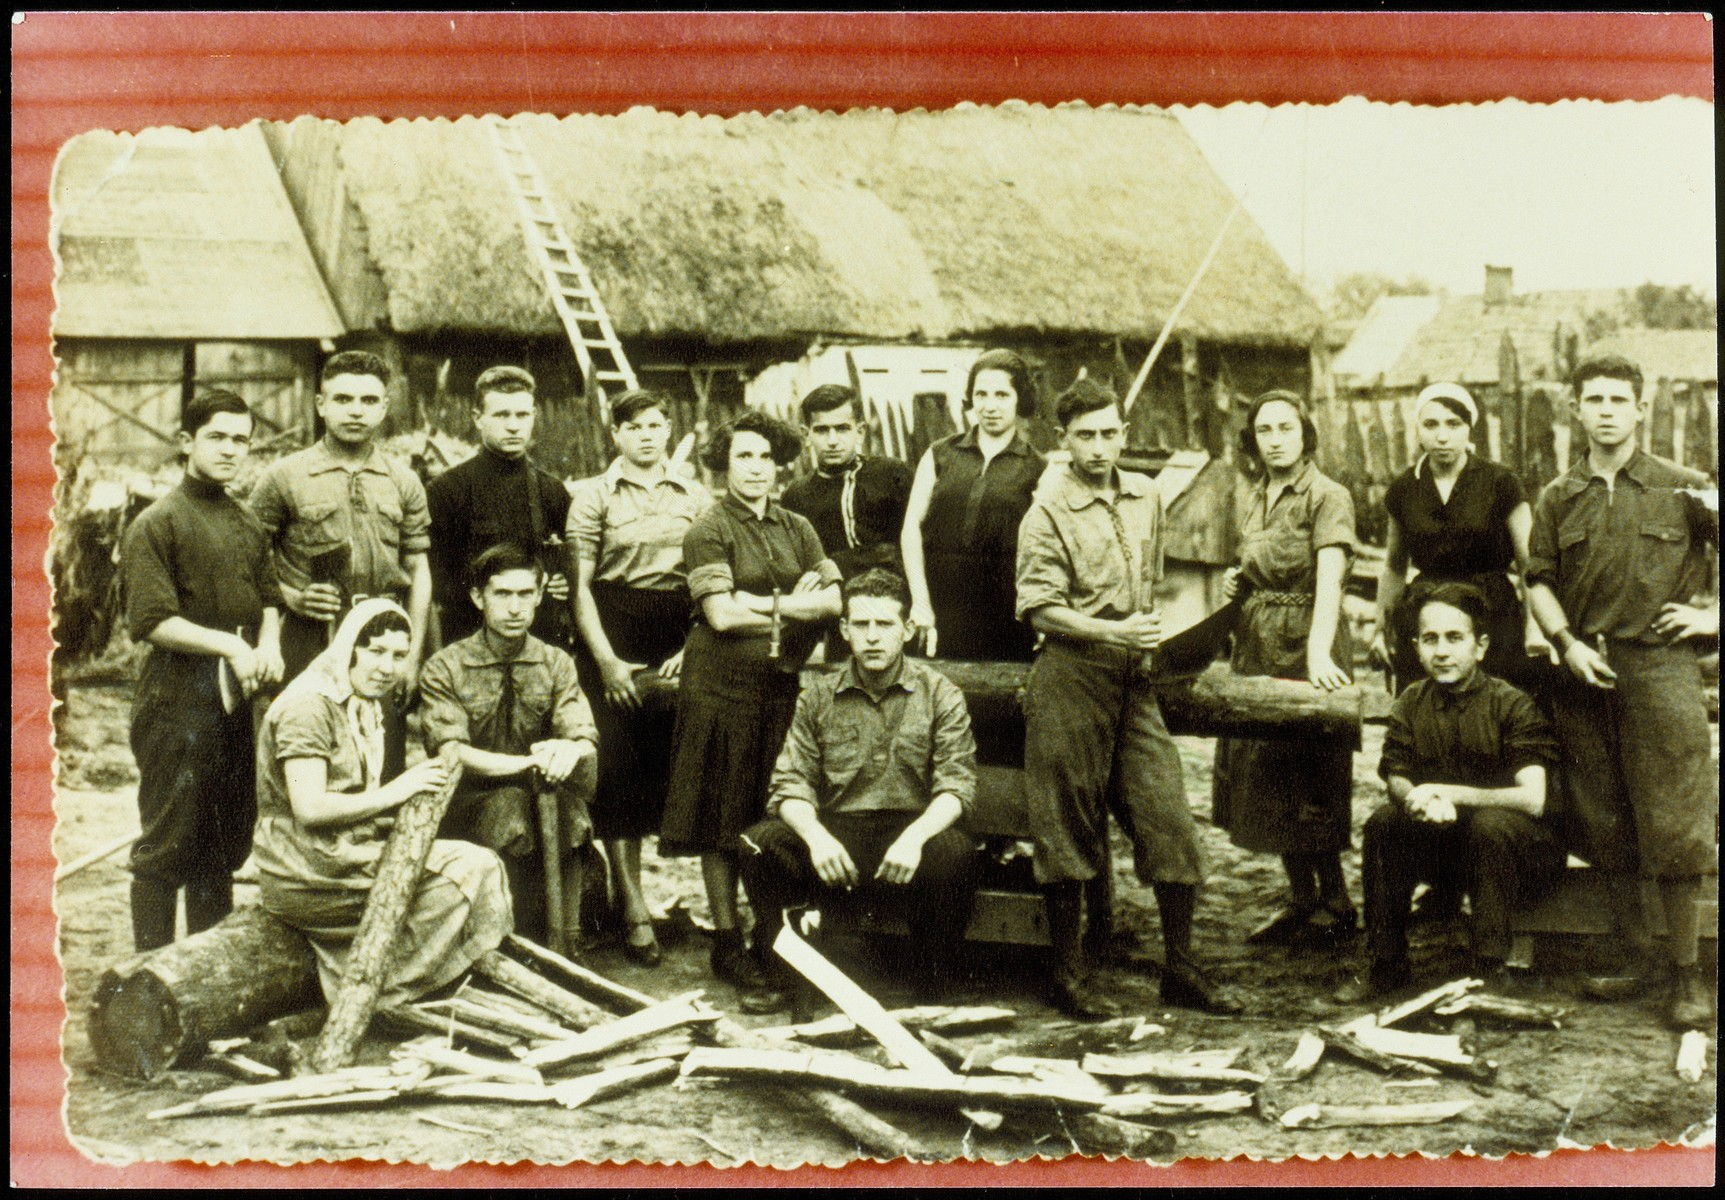 Members of a kibbutz hachshara in Wyszkowo gather in their lumberyard.  Zelig Ginsberg is pictured fourth from the right.  He survived the Holocaust in Siberia and then immigrated to Israel in 1948.